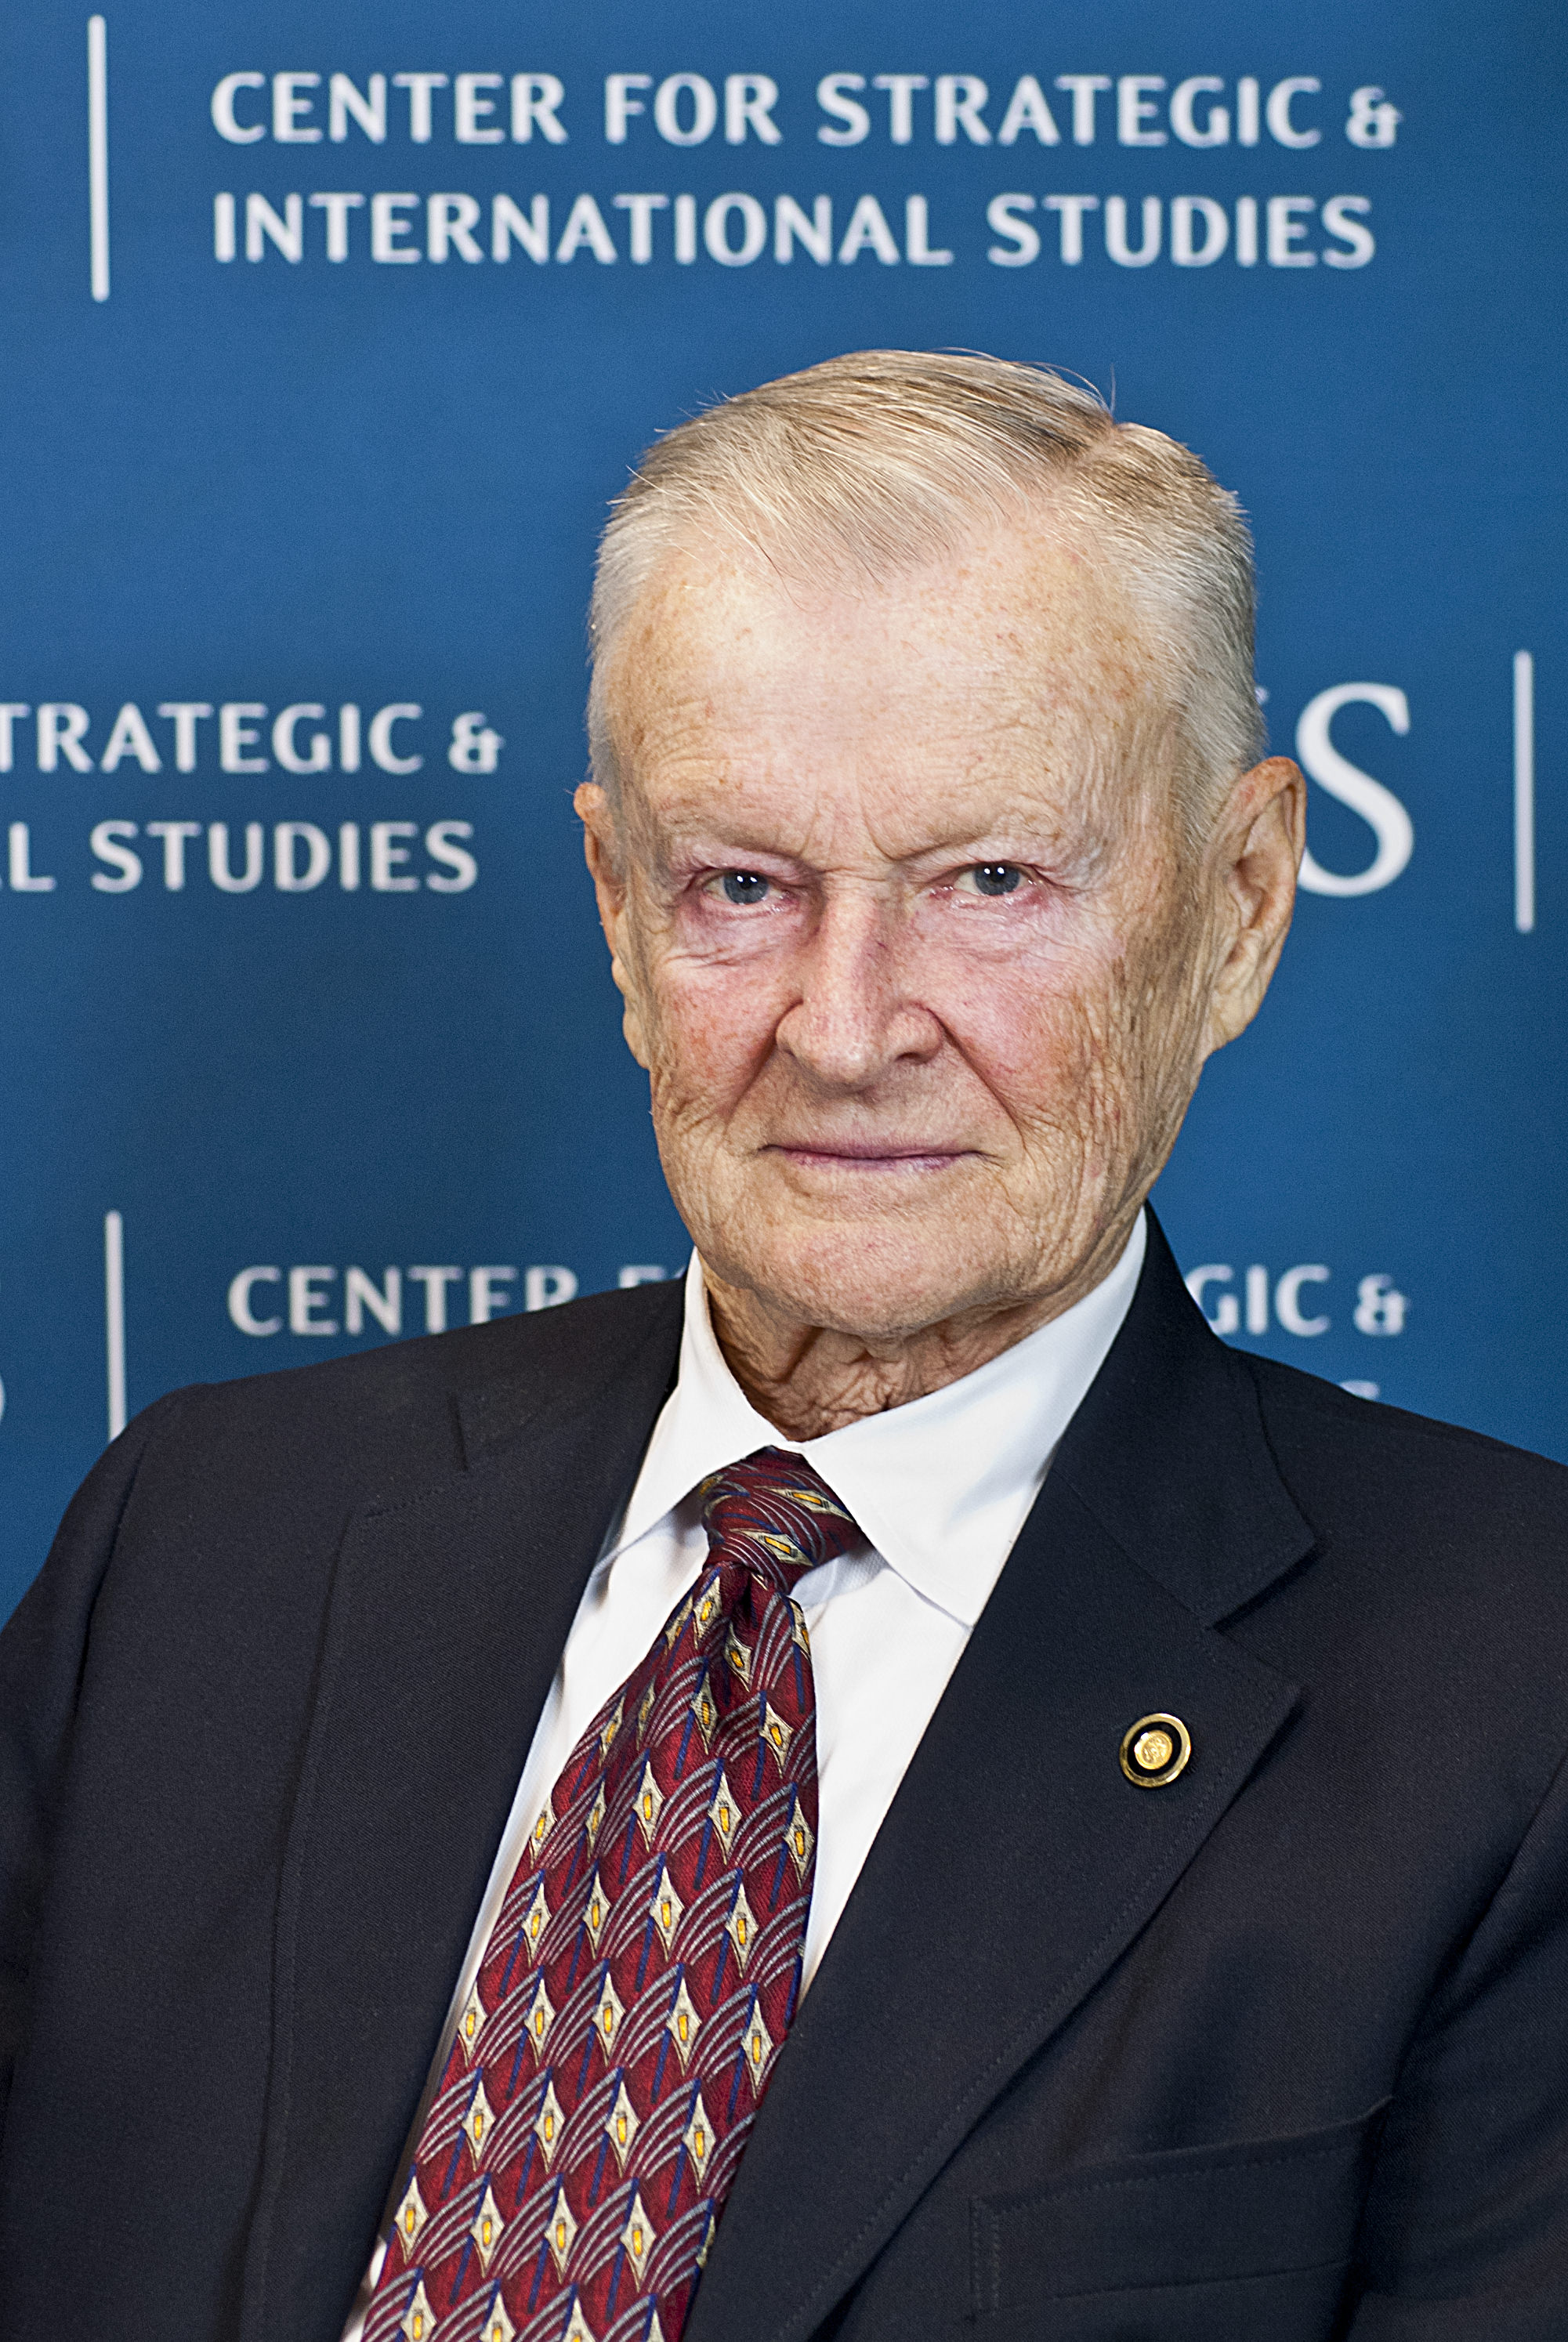 Interview with Dr. Zbigniew Brzezinski